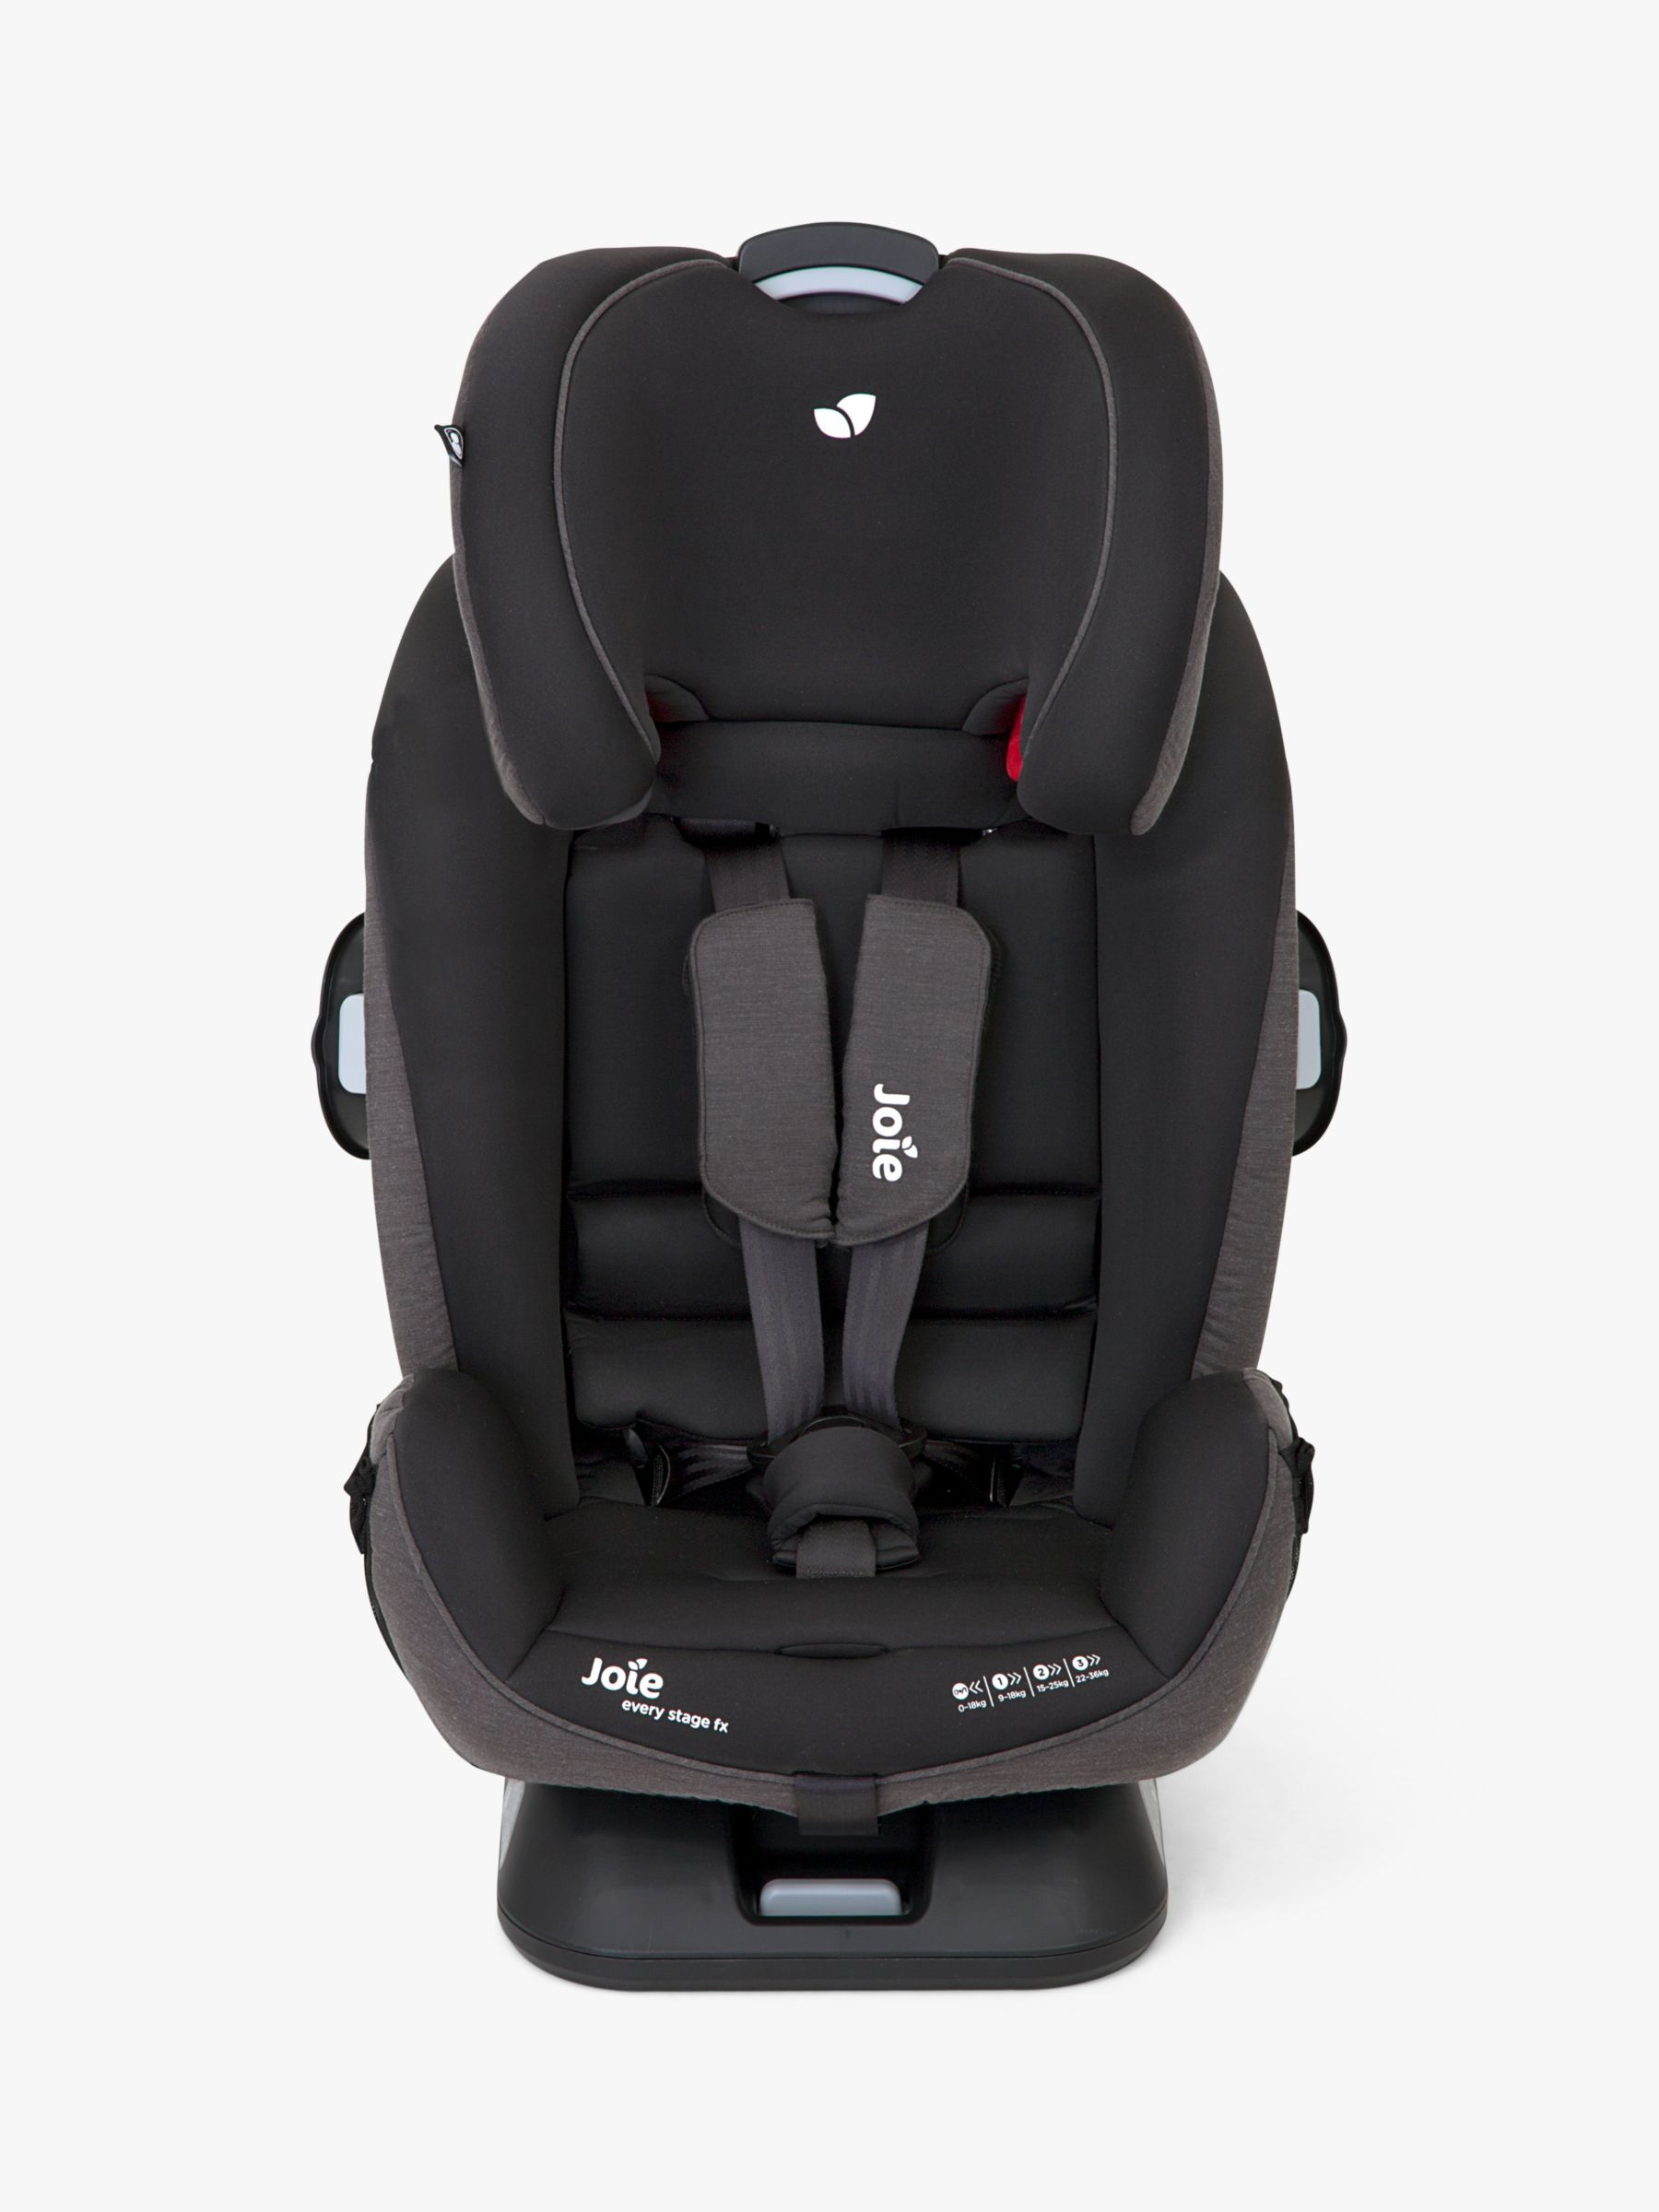 Joie Baby Every Stage FX Group 0+/1/2/3 Car Seat, Coal in